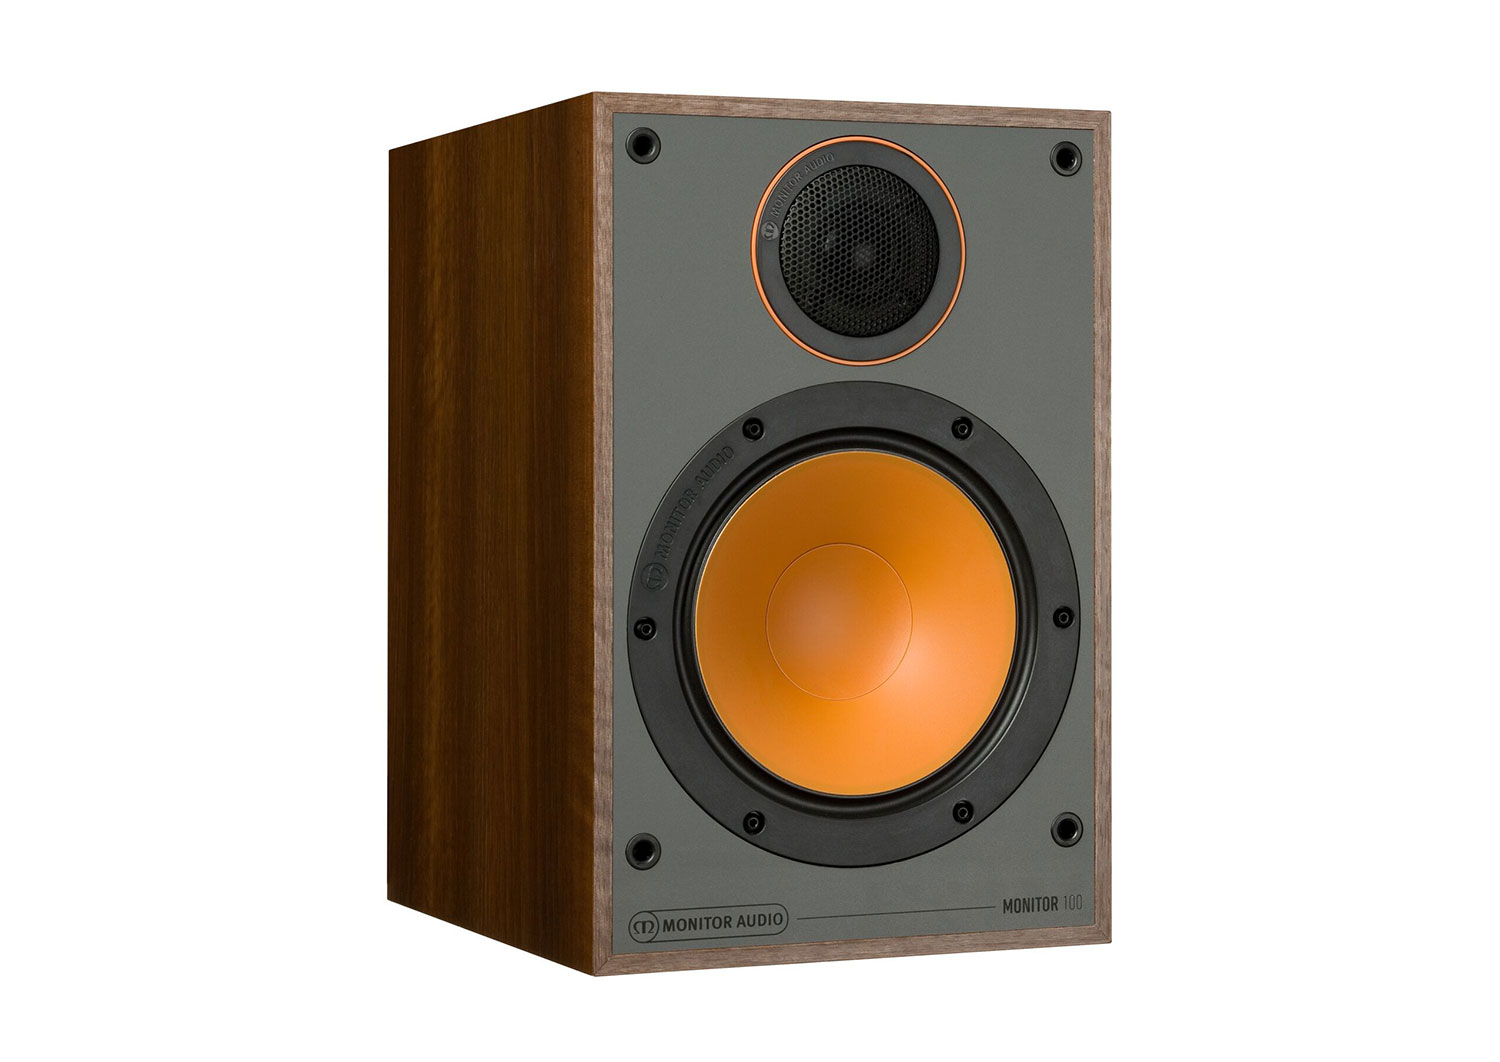 Monitor 100 (Walnut Vinyl)